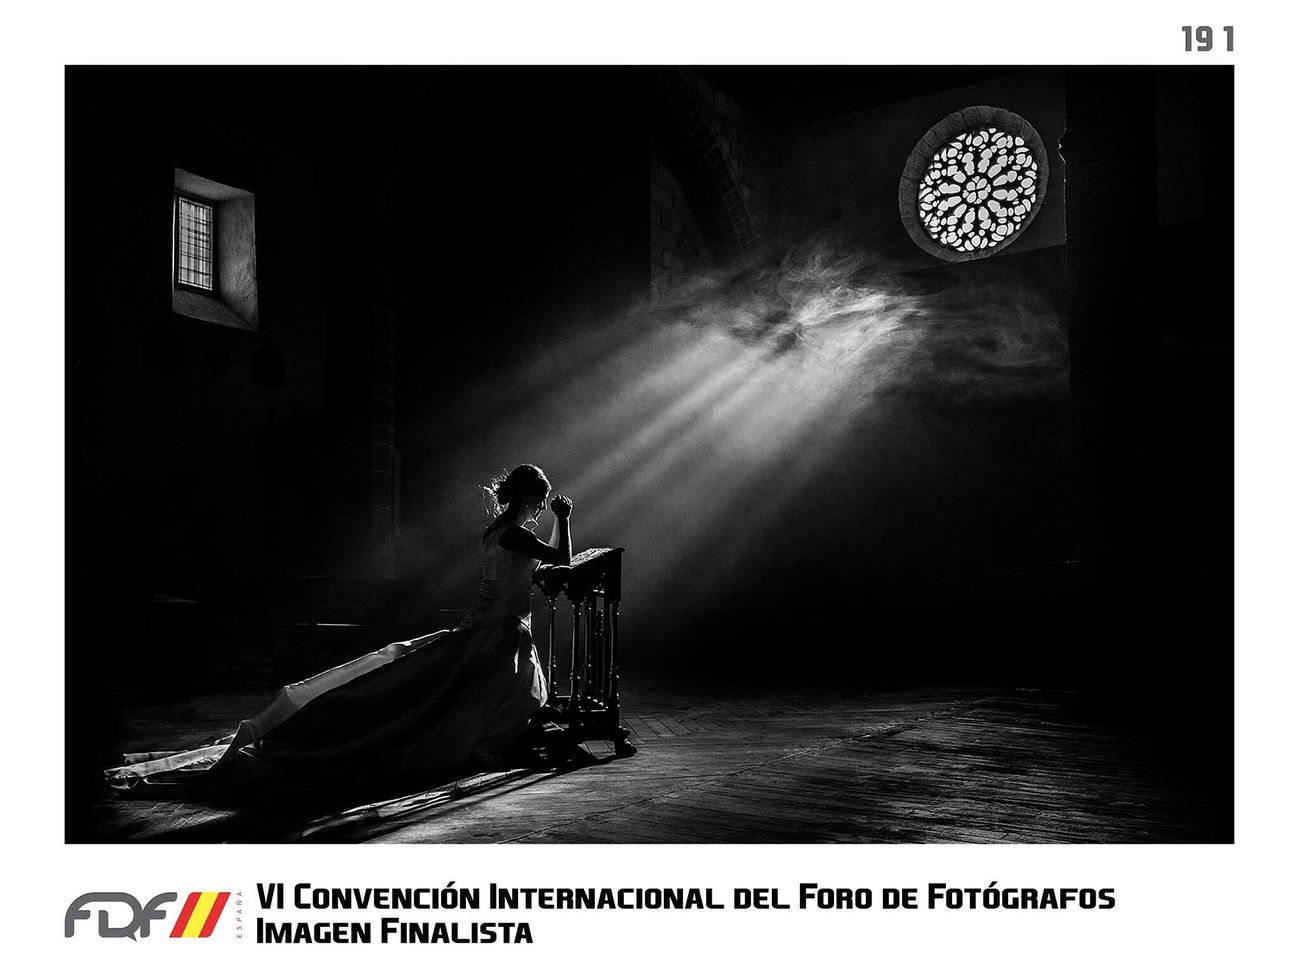 Tercer premio en la VI Convención Internacional del Foro de Fotógrafos Fotografia Extremadura Popular Photos JohnnyGarcía Blackandwhite Wedding Blackandwhite Photography Photography Wedding Photography Weddingphotography Bodas Wedding Photos Weddingphotographer Hervás  Black And White Fotografie Photographer Awards Salamanca